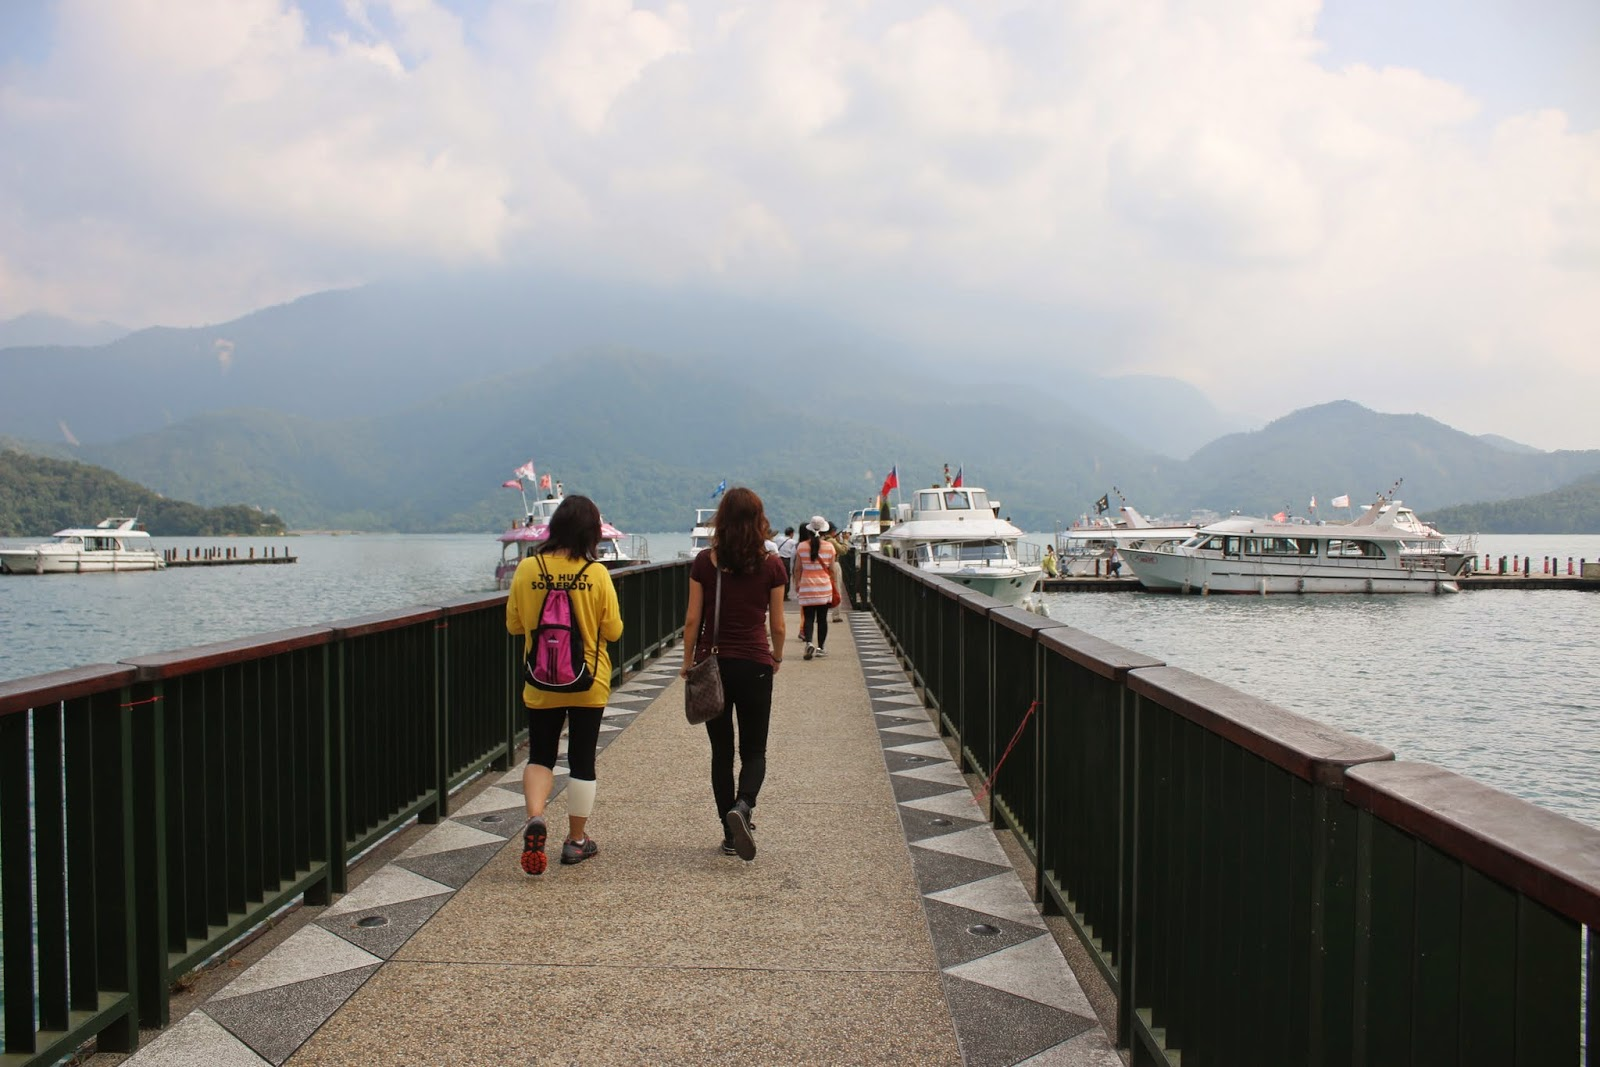 Heading for a ferry ride to enjoy the scenic view of Sun Moon Lake in Taiwan